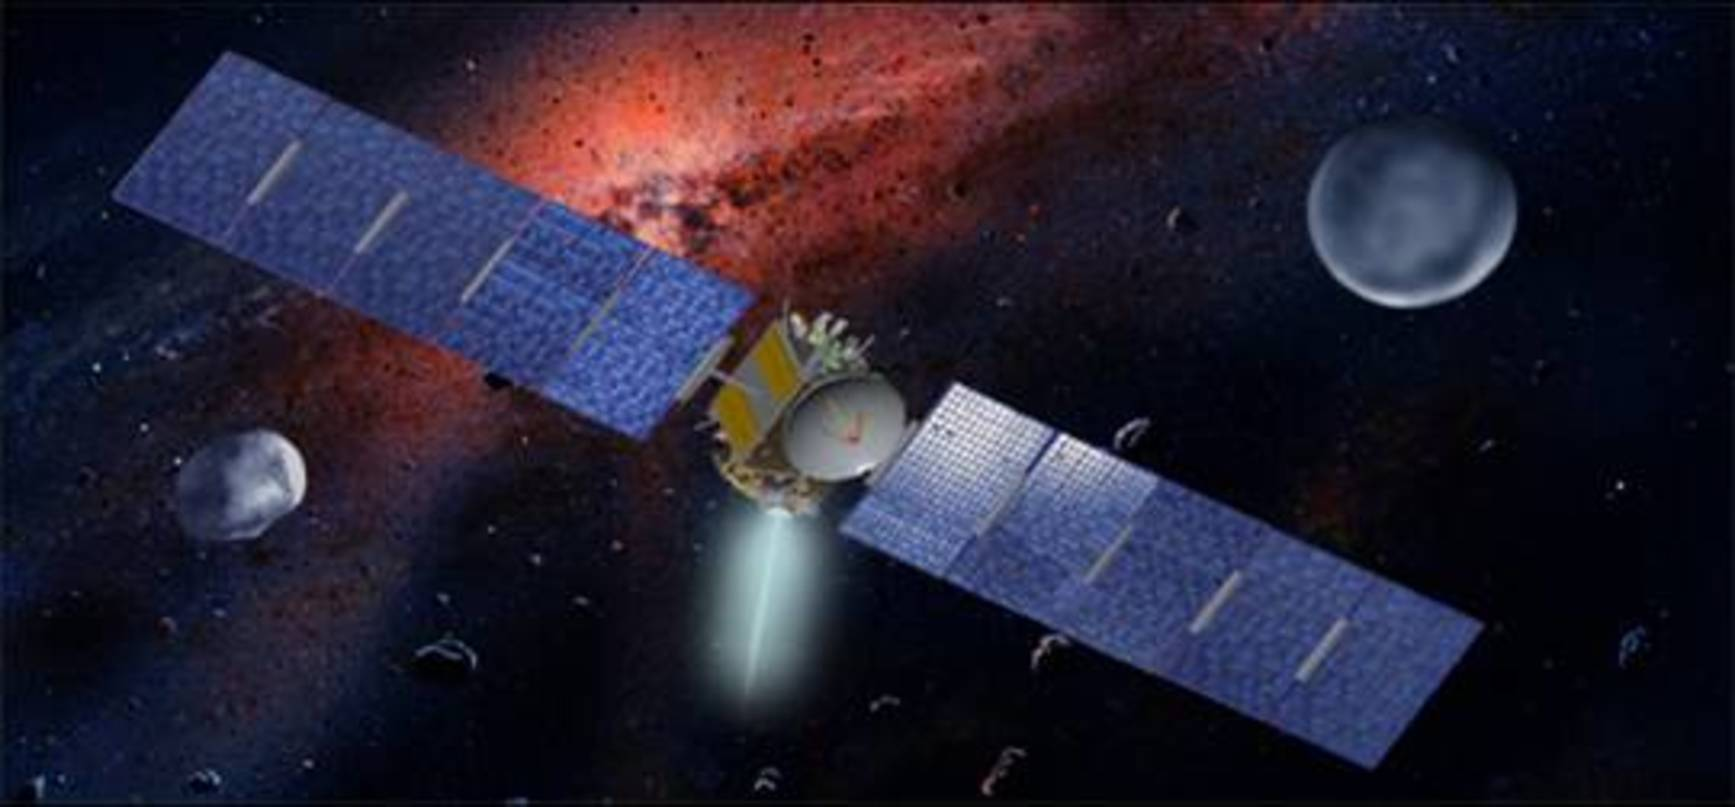 The revolutionary ion engine that took spacecraft to Ceres